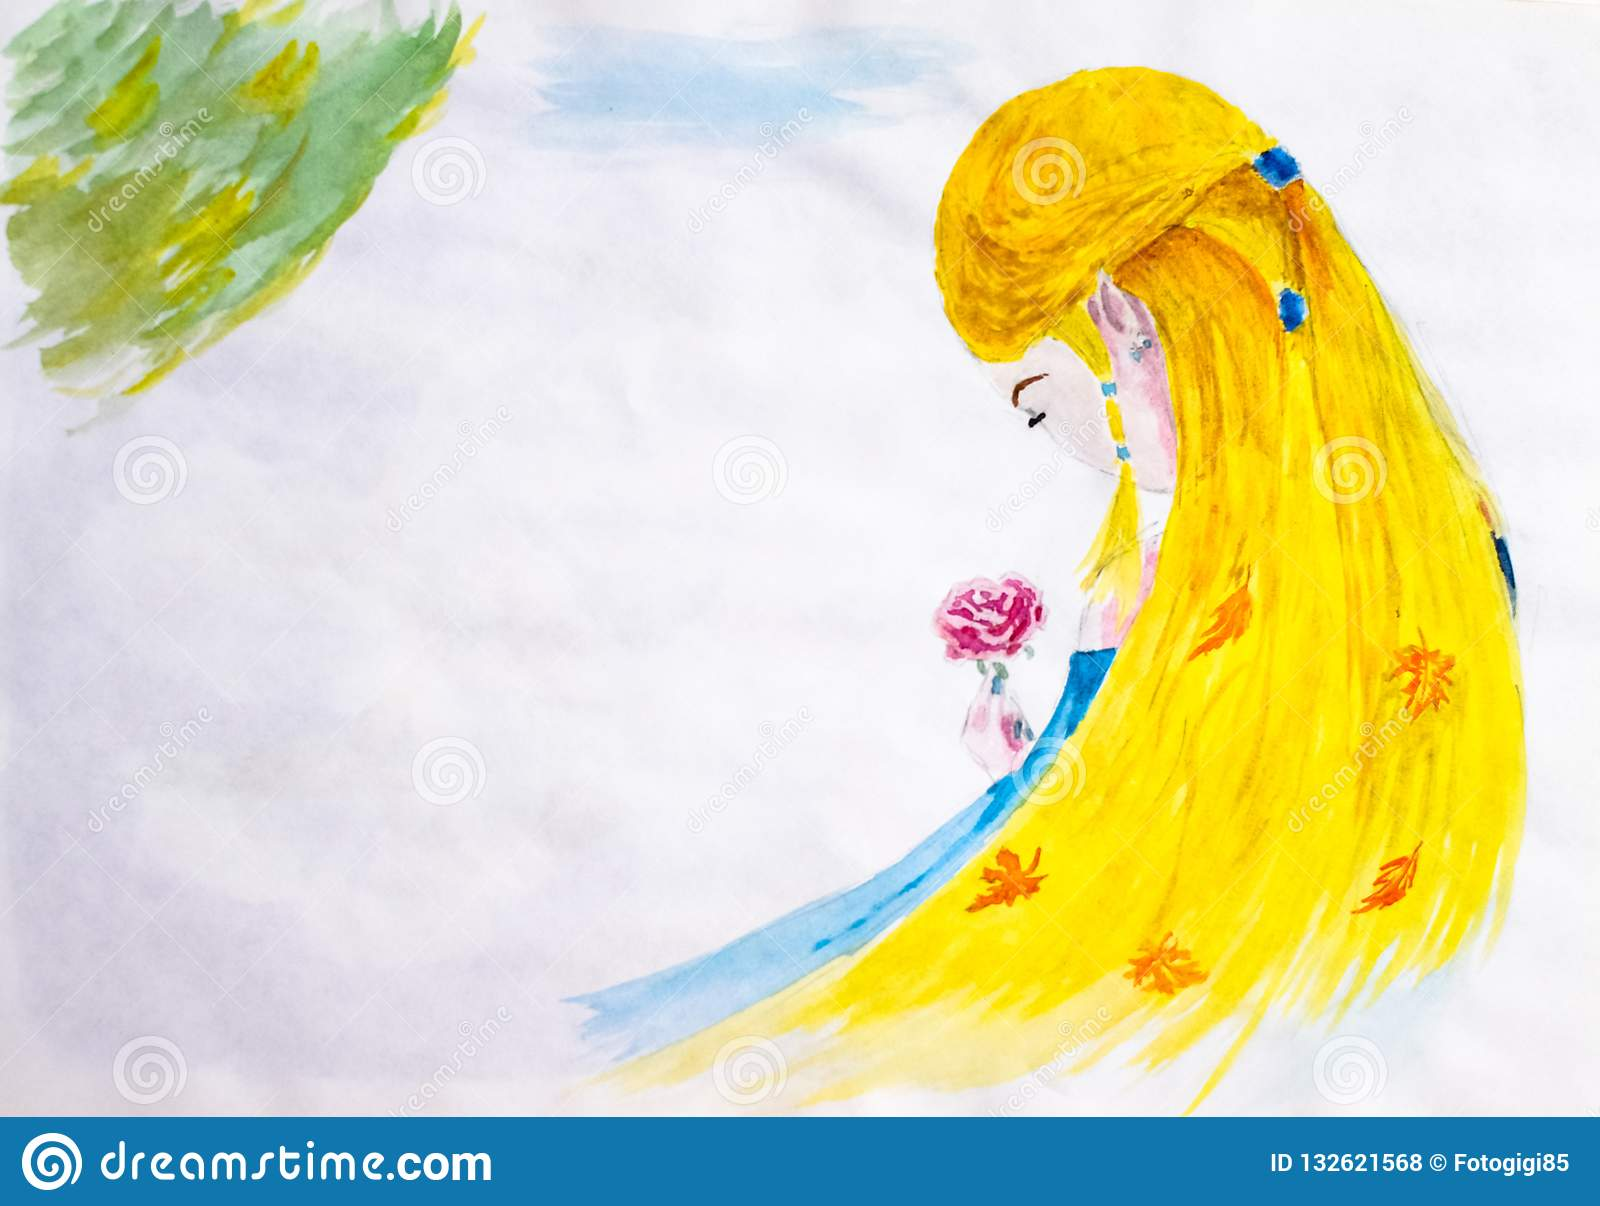 A Girl With Long Blond Hair Admires A Rose Flower Autumn In